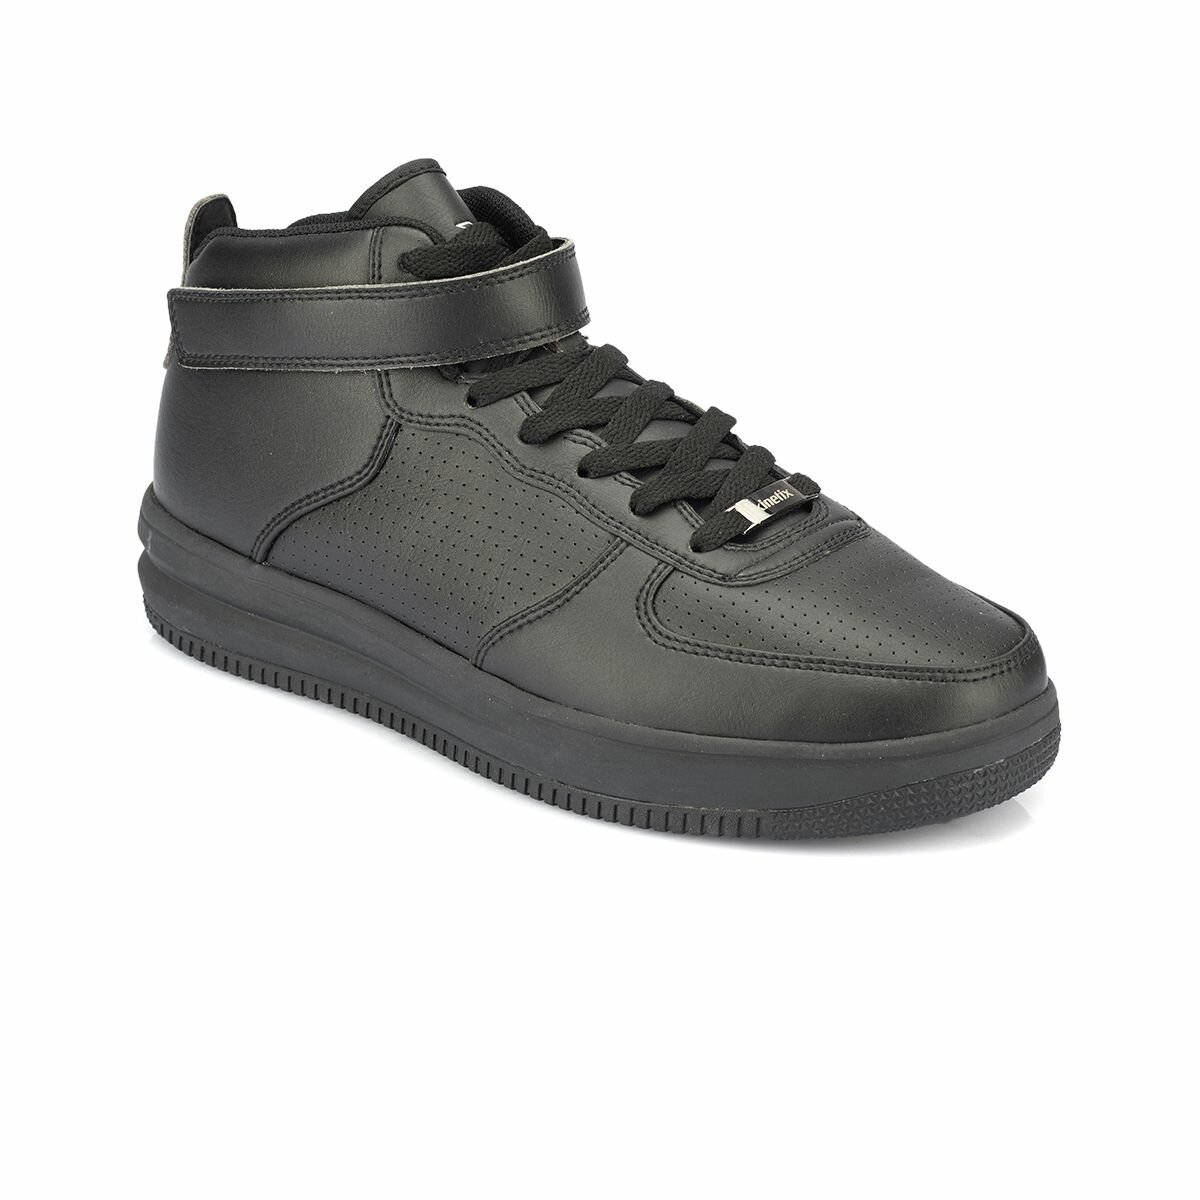 FLO KALEN HI Black Men 'S Sneaker Shoes KINETIX